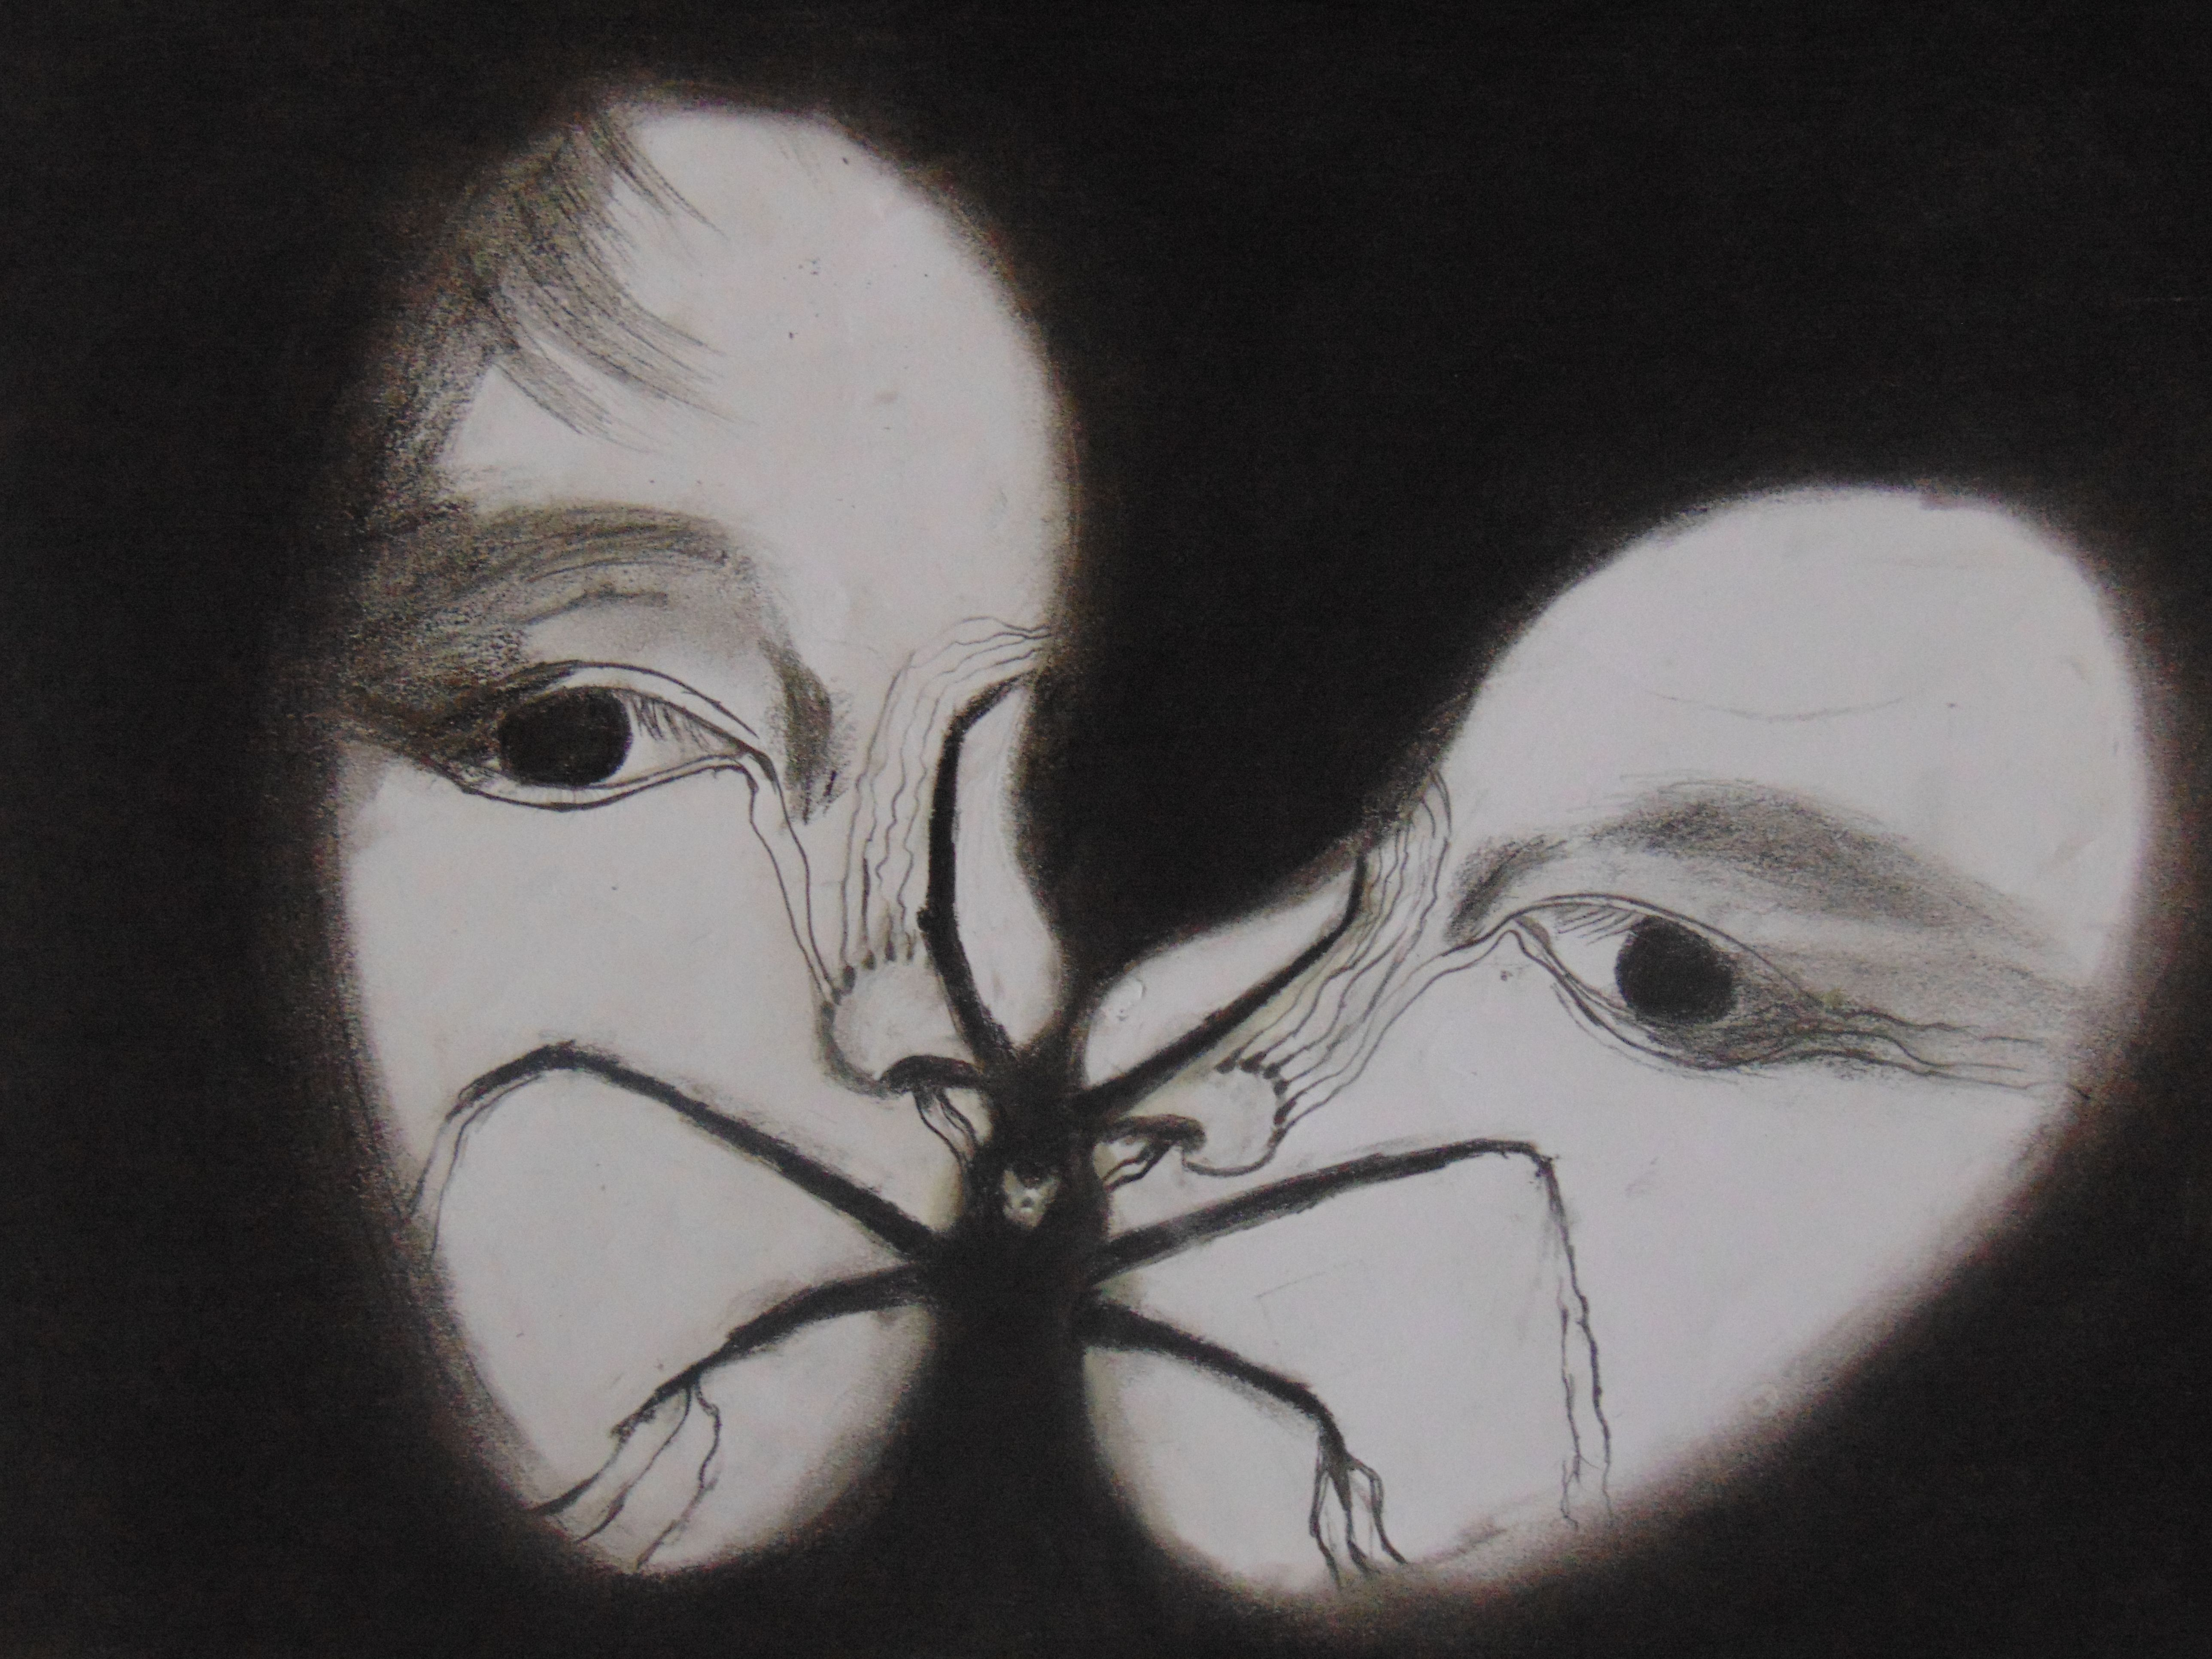 sometimes Reflection makes a scene more complicated. http://drawingbazar.blogspot.in/